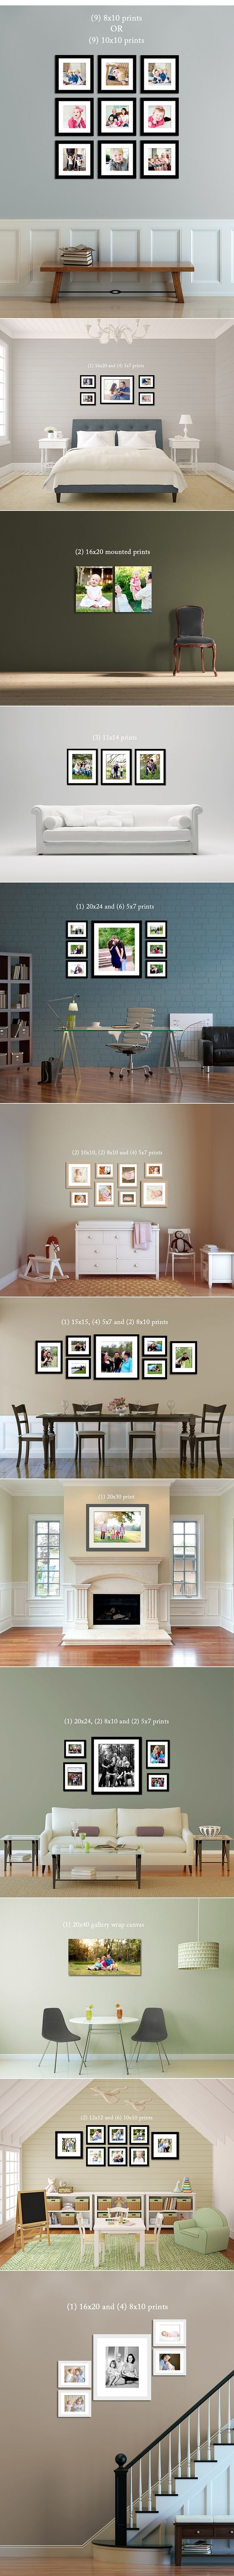 how to hang photos